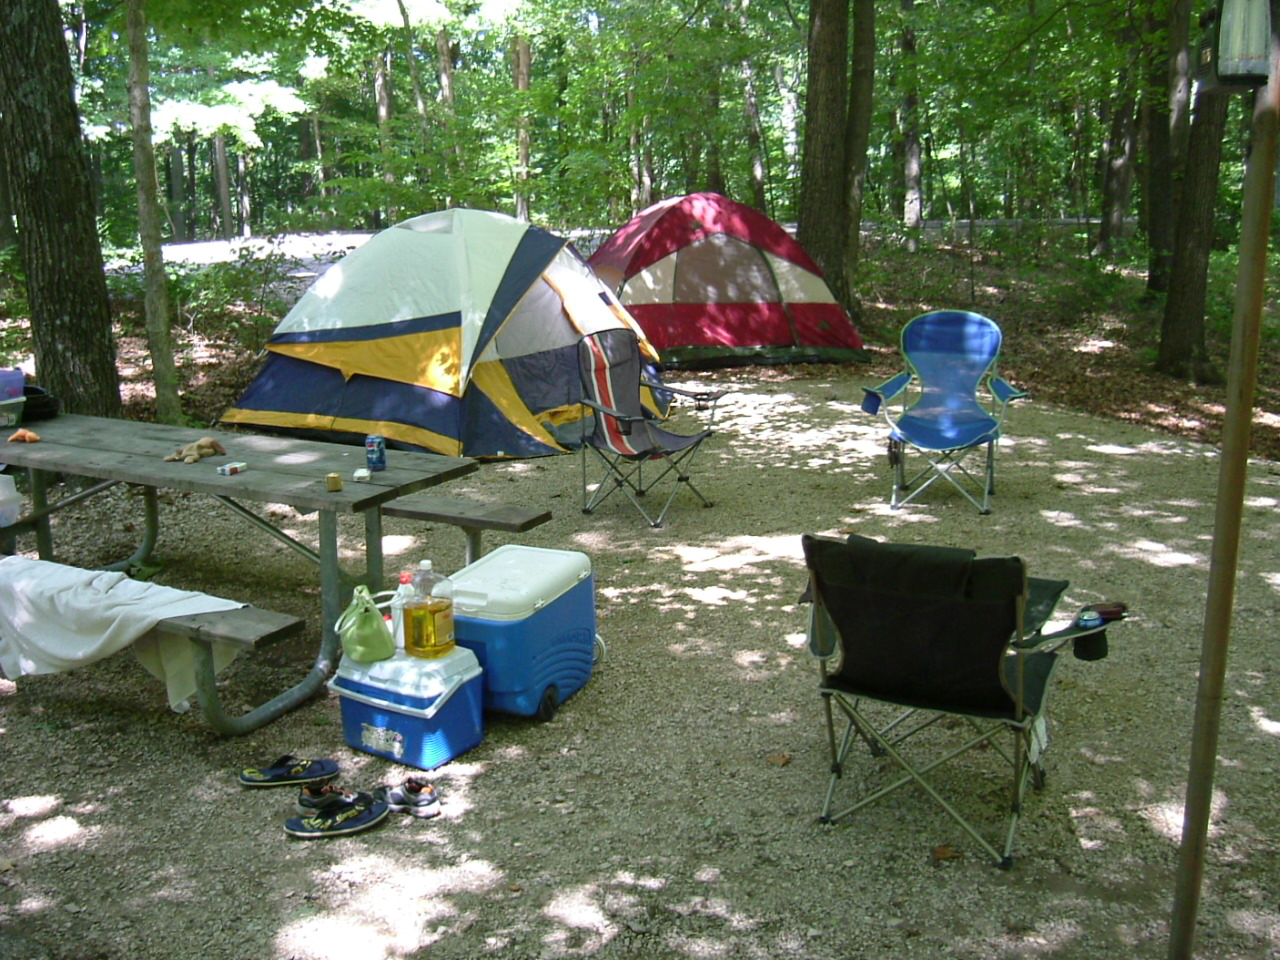 Camping at Celina Campground